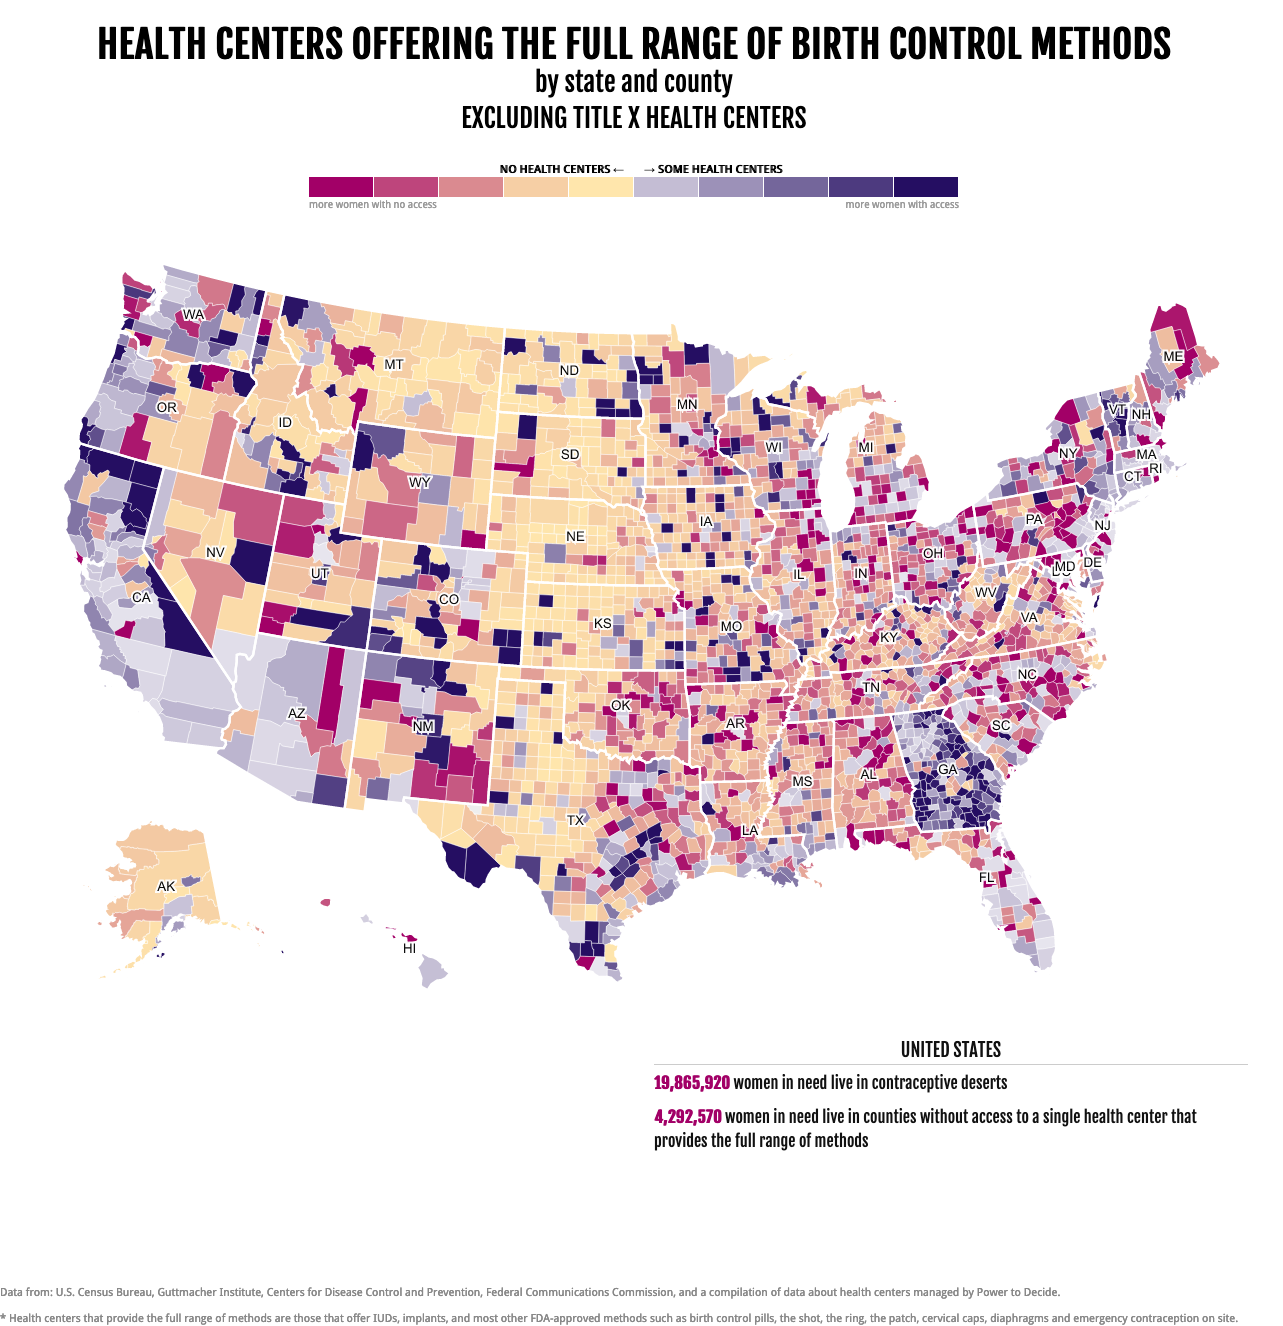 A map of contraceptive deserts in the US without Title X